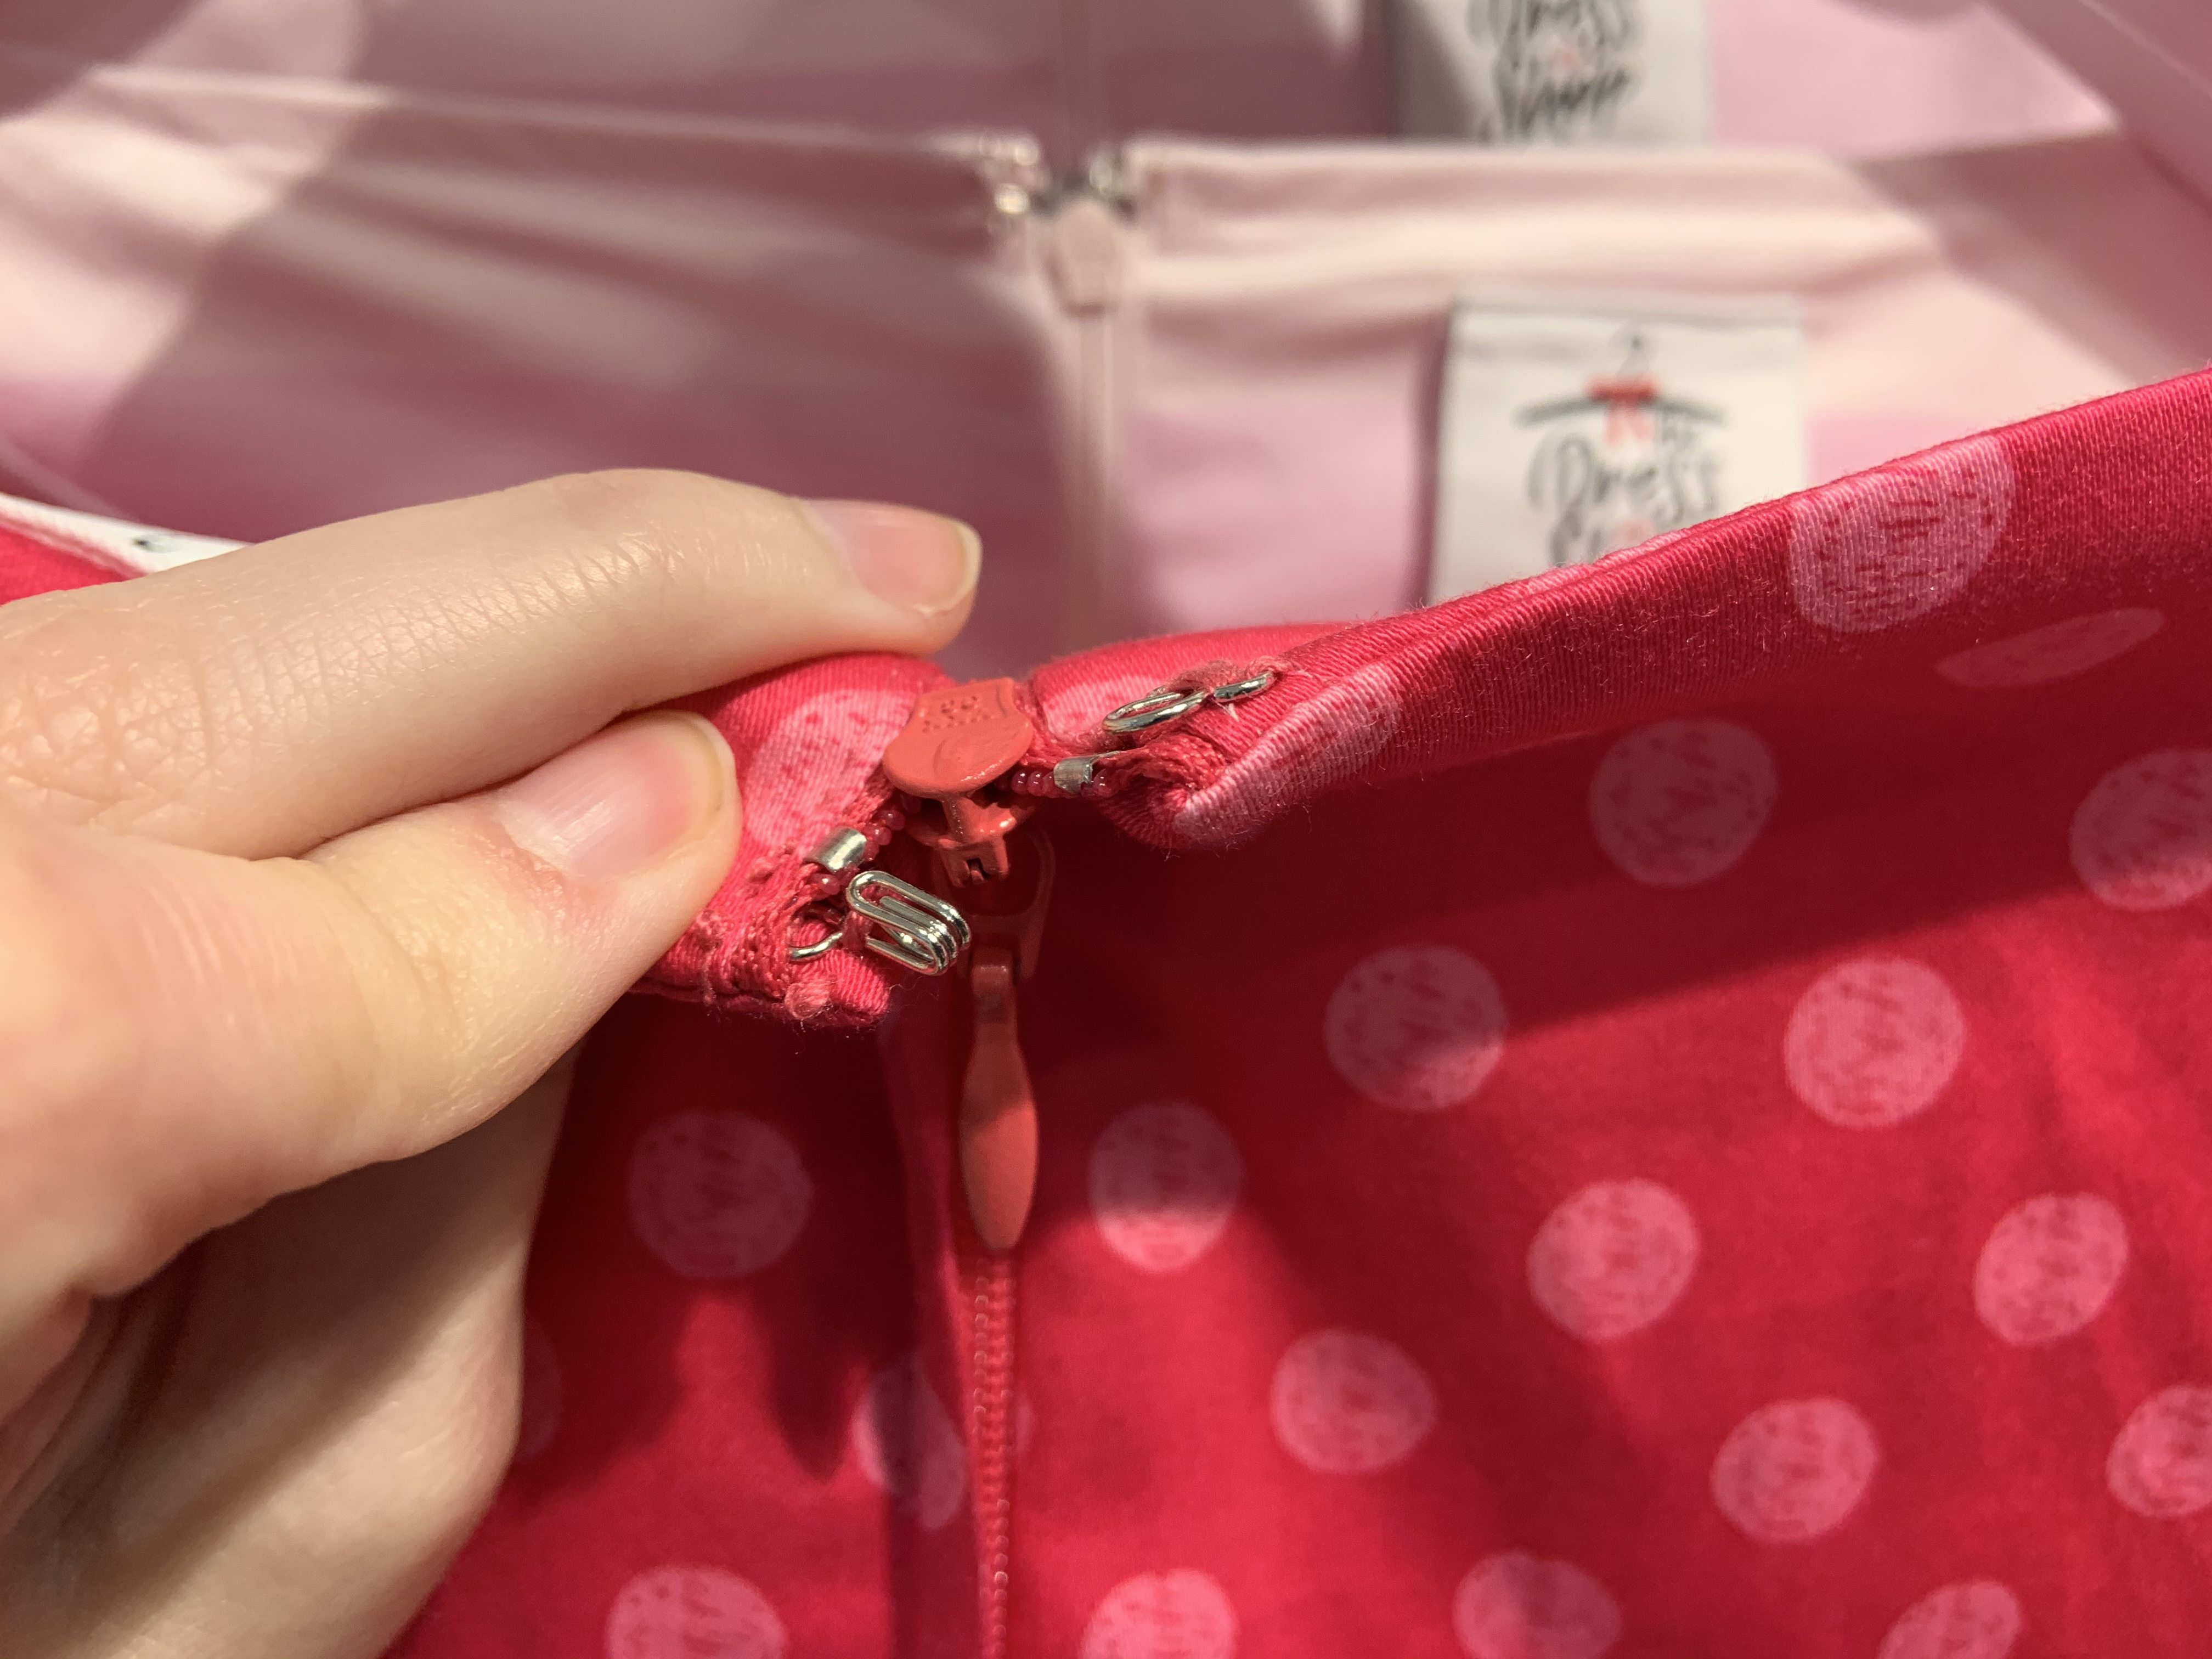 Minnie Mouse Rock the Dots dress 1/18/20 9